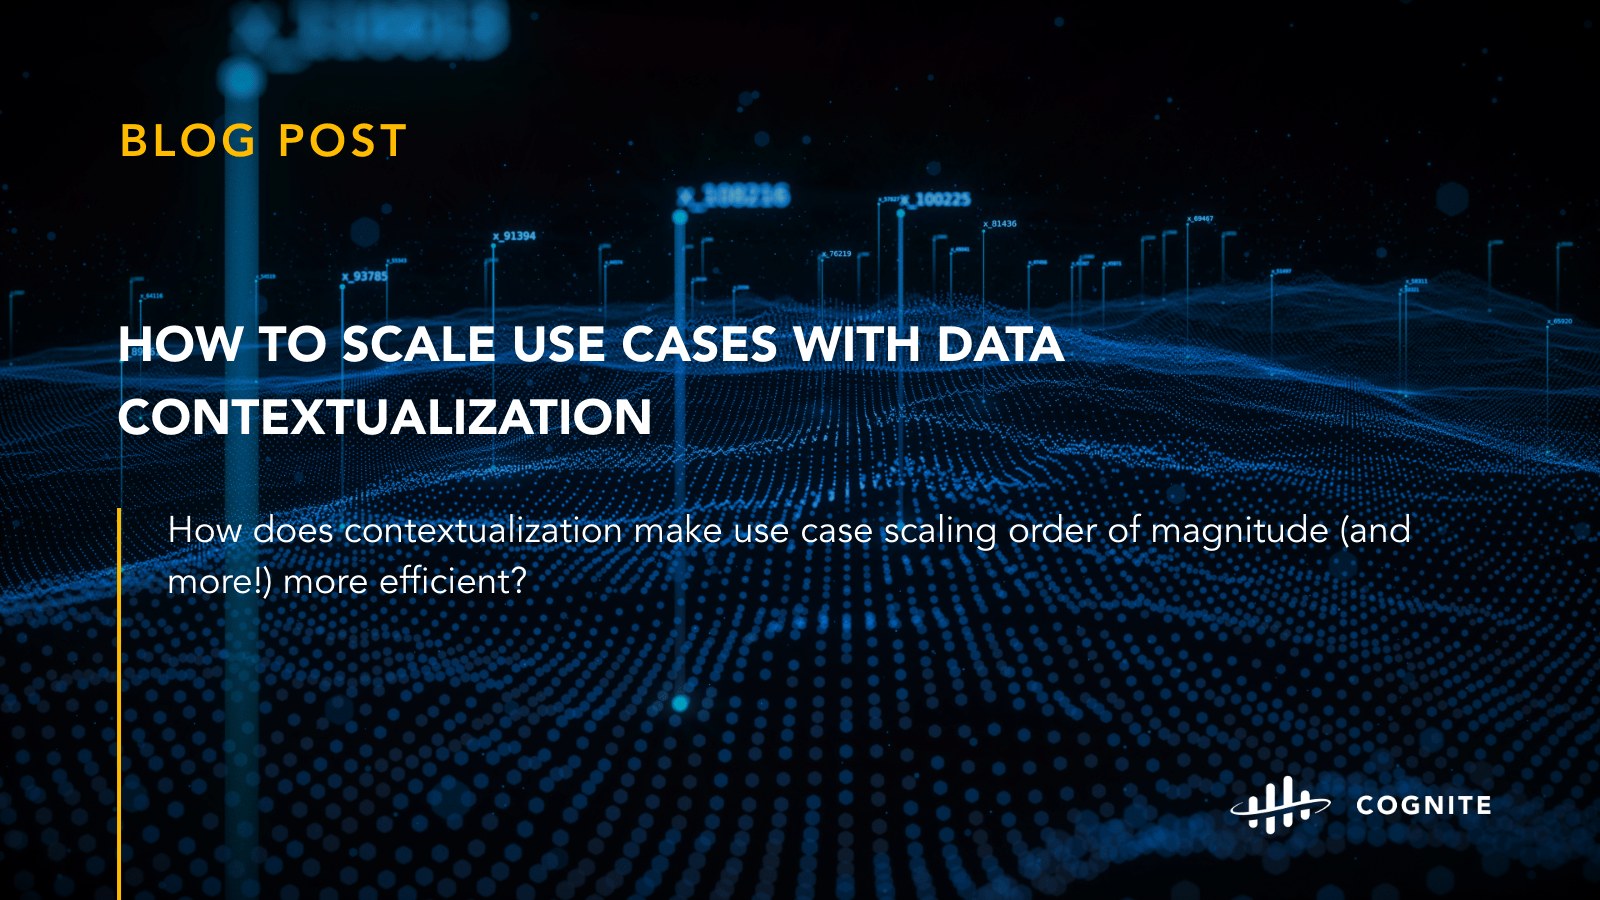 How to scale use cases with data contextualization